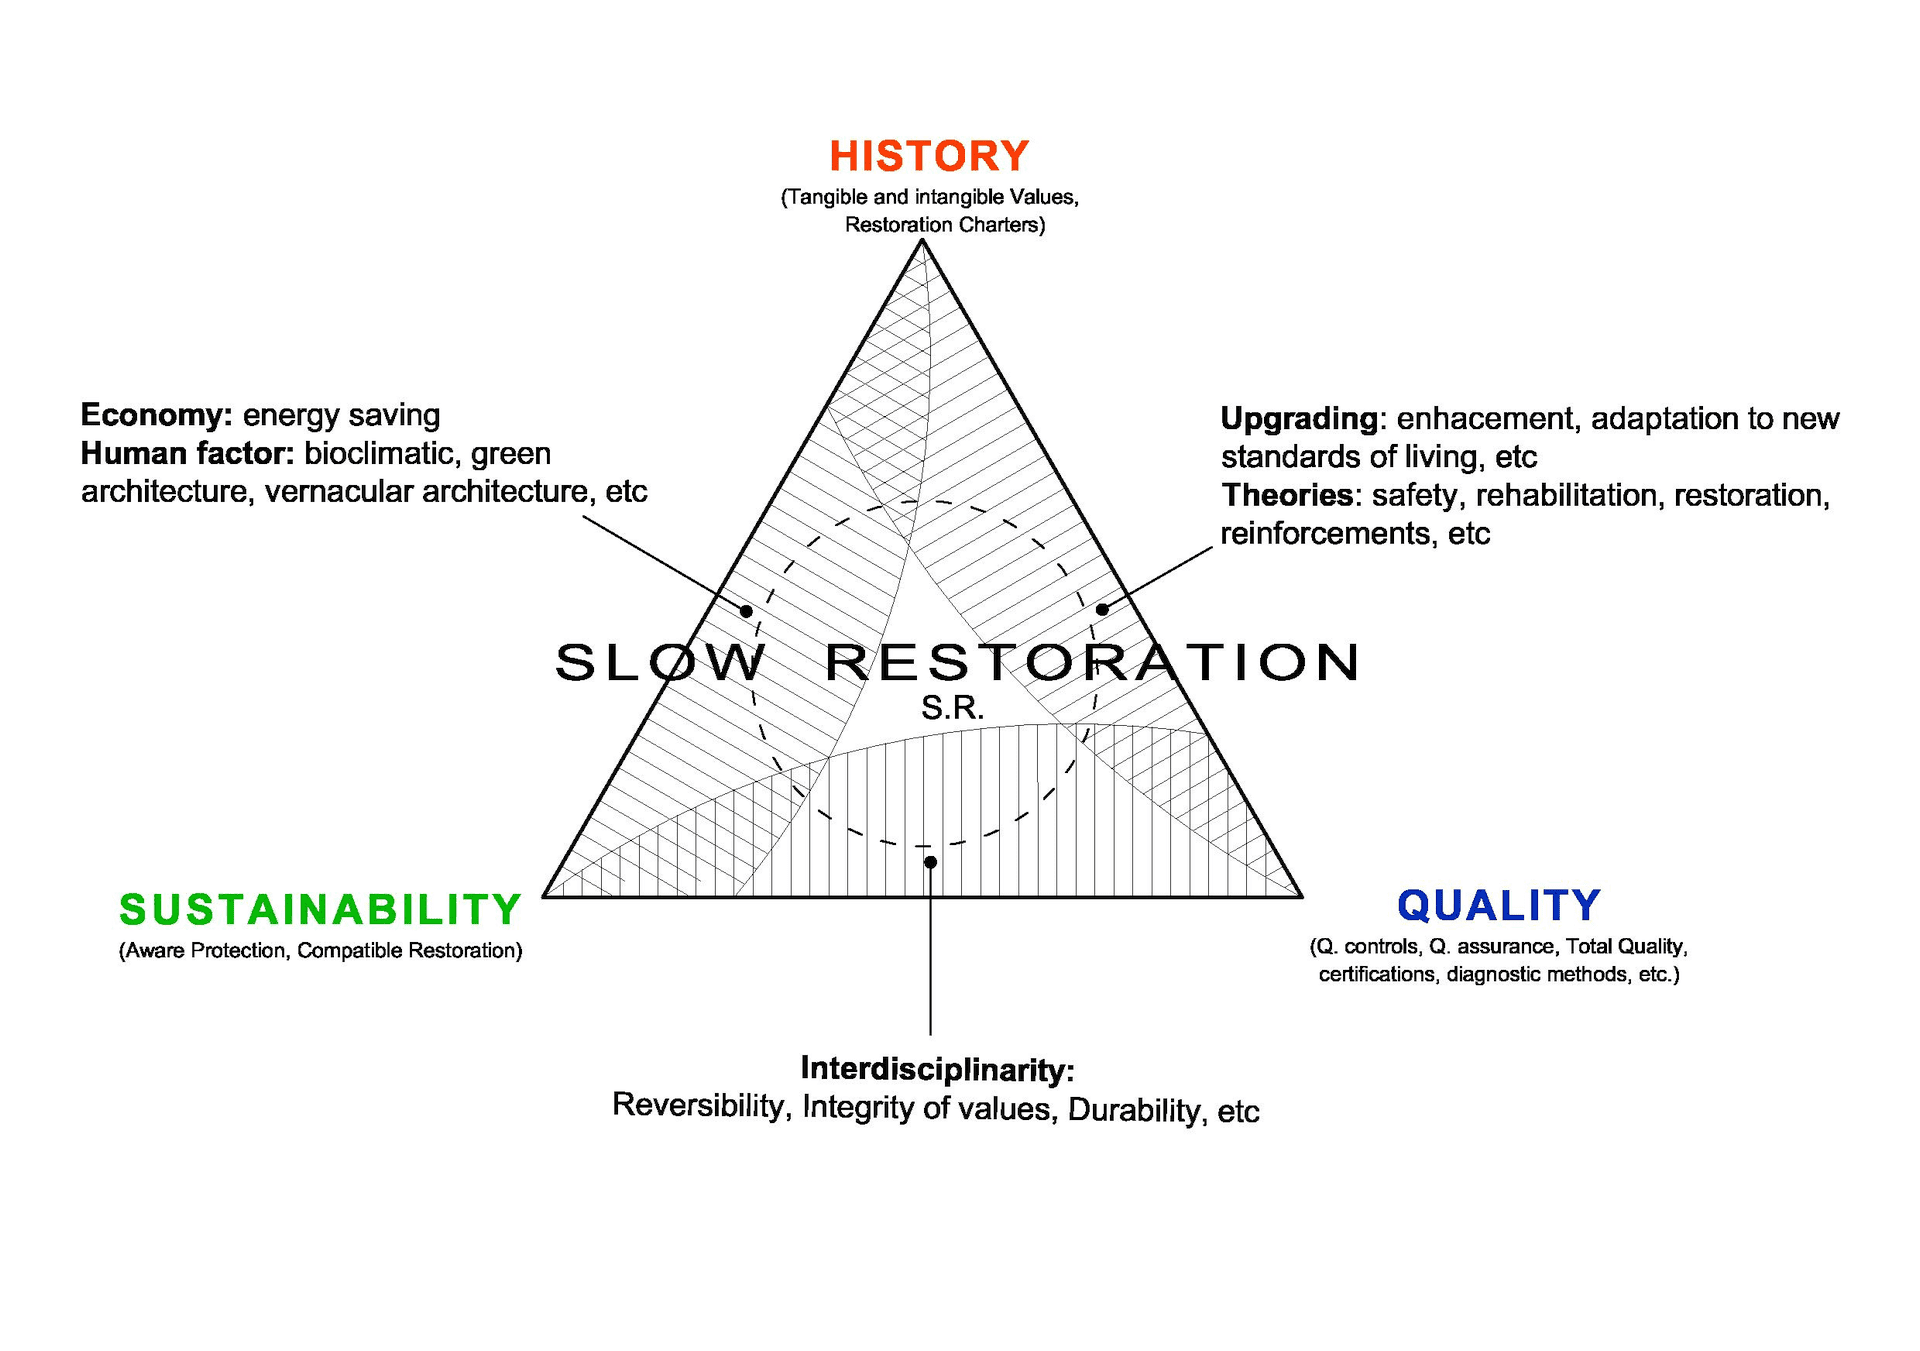 Diagram of restoration philosophy.